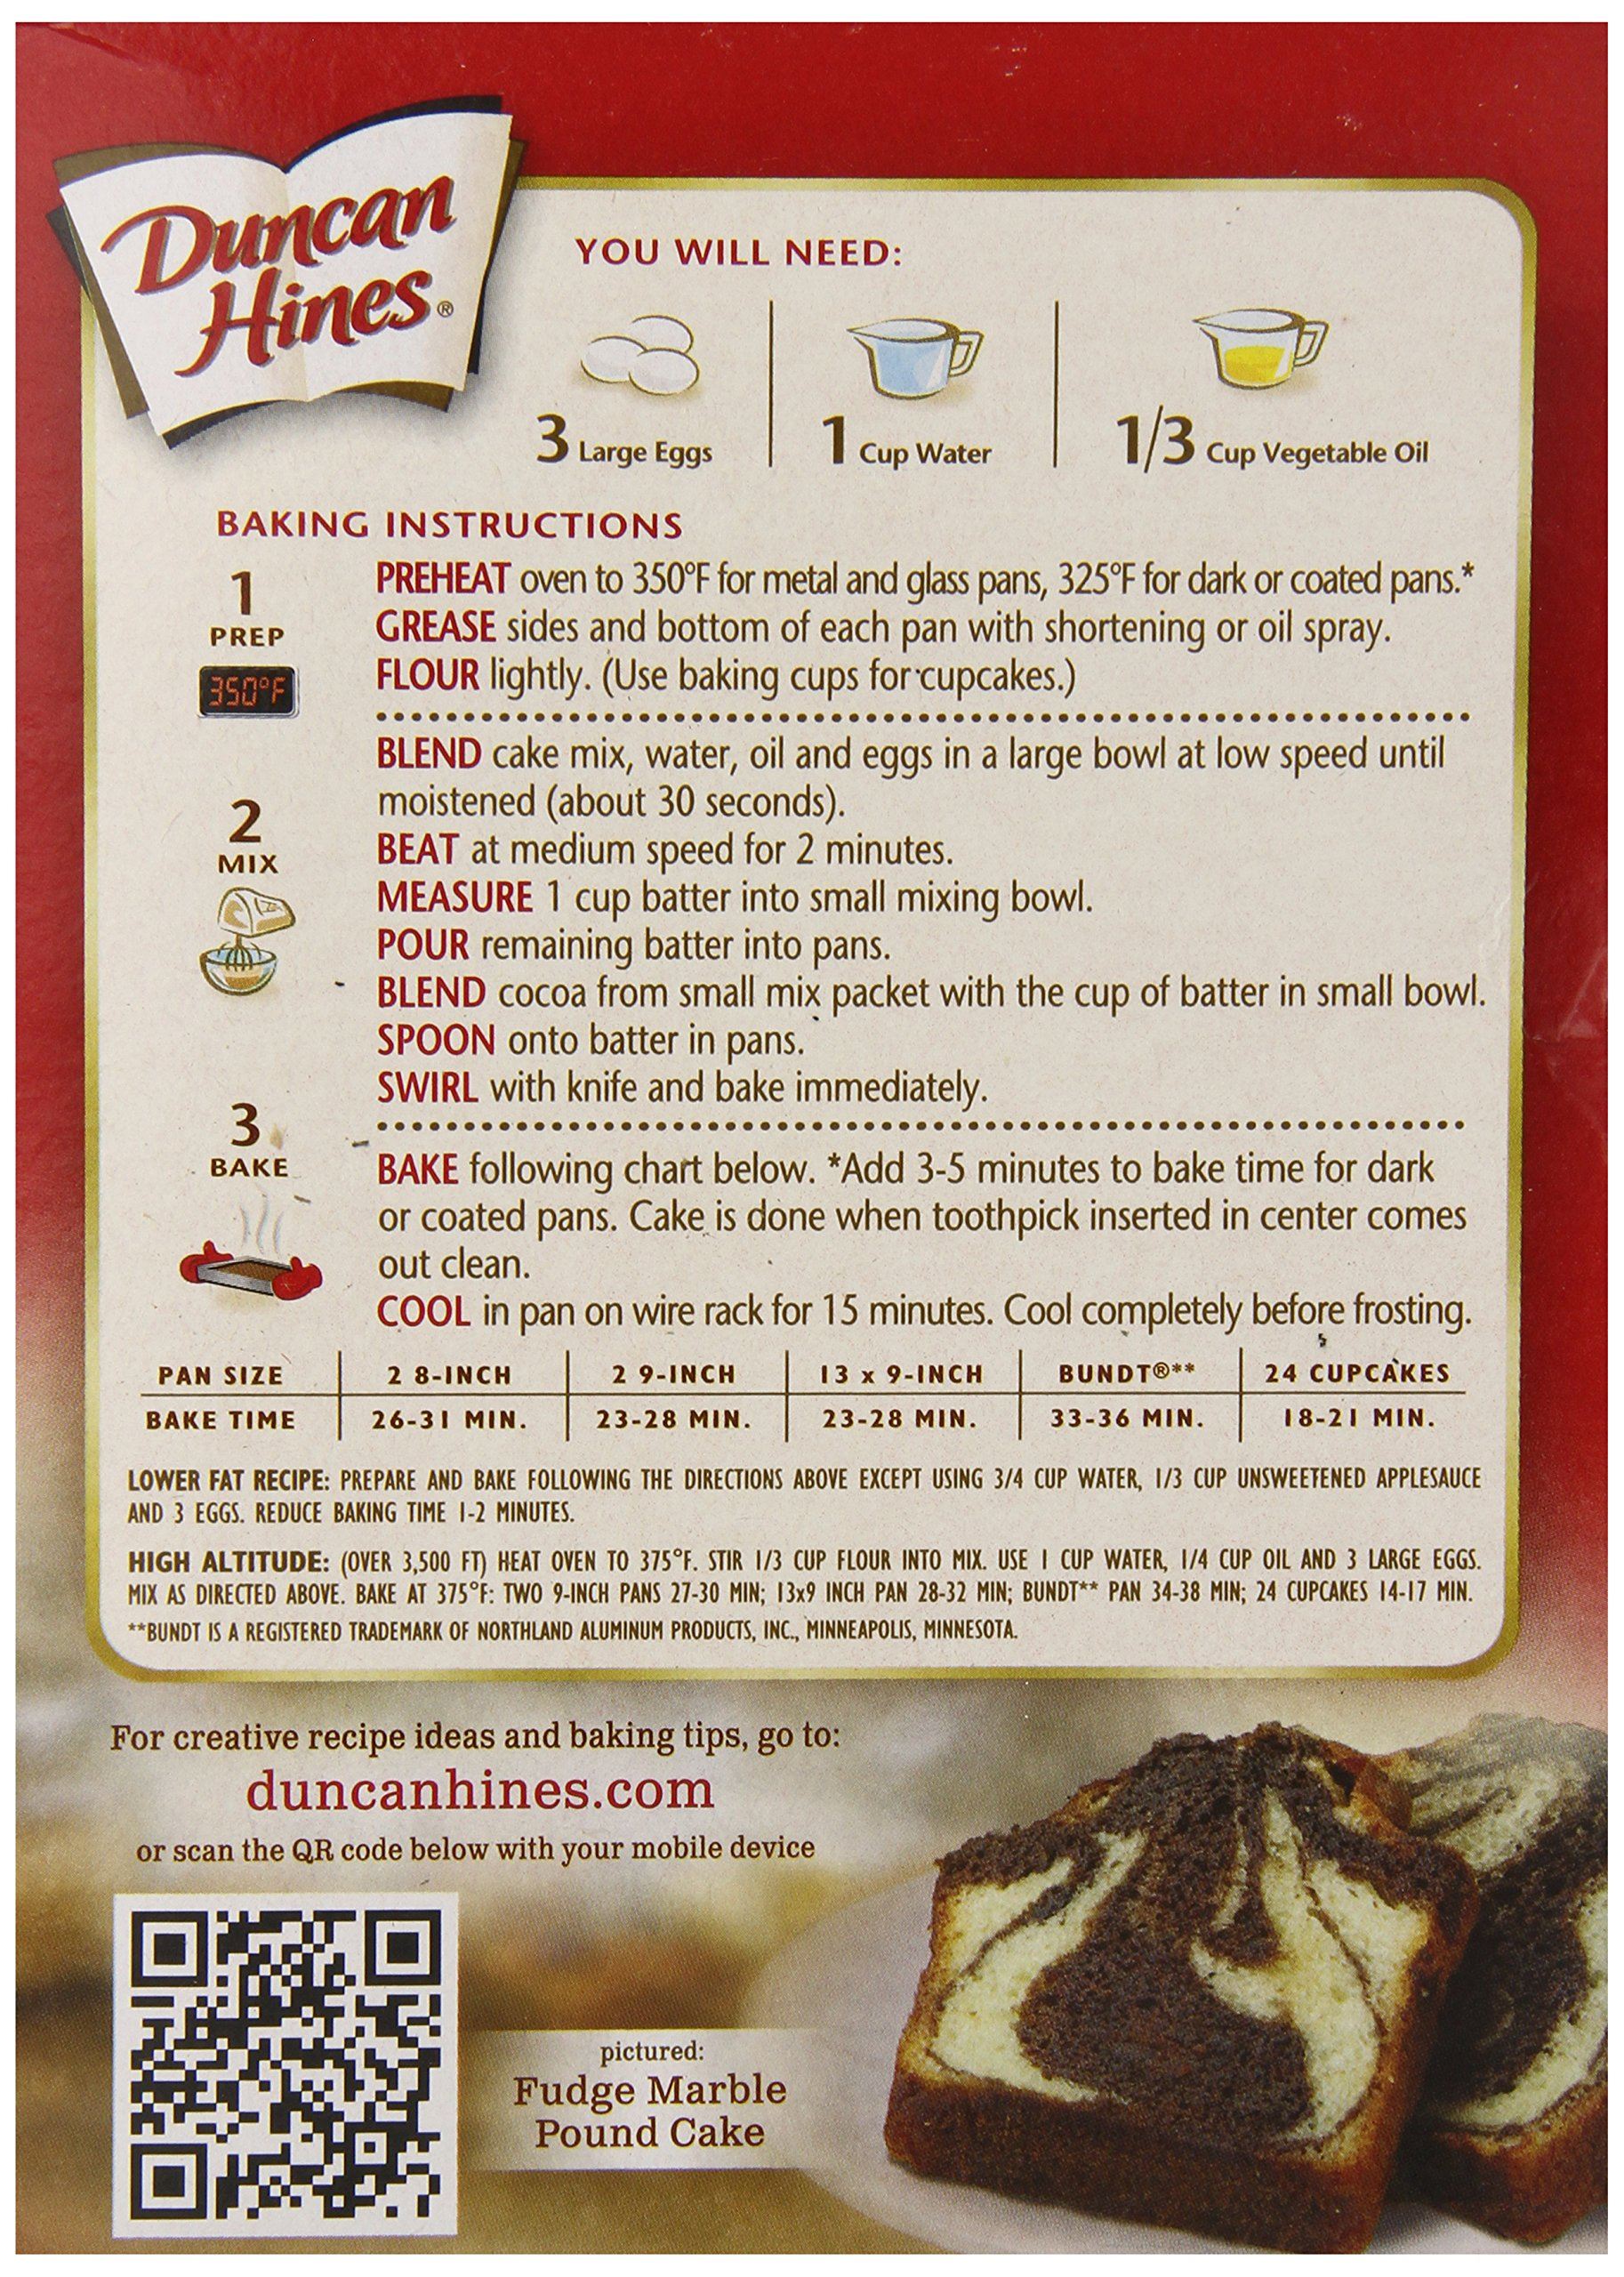 Duncan Hines Cake Mix, Fudge Marble, 16.5 Ounce (Pack of 12) by Duncan Hines (Image #4)